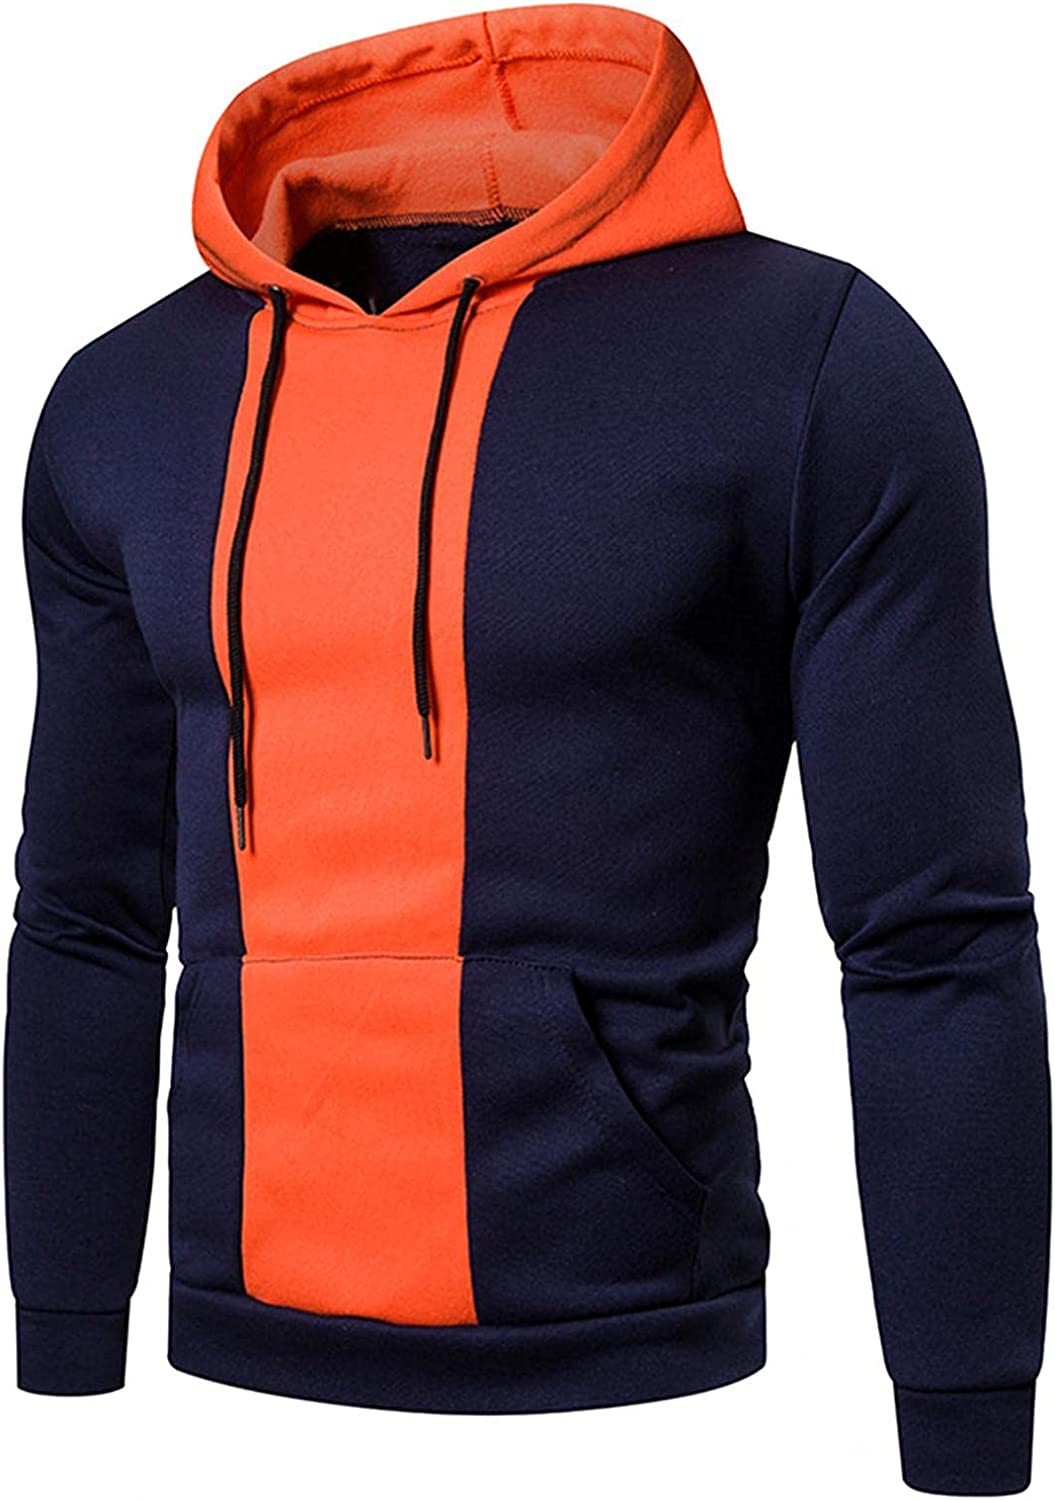 Men Hooded Sweatshirts Casual Sports Patchwork Color Block Hoodies Pullover Yoga Workout Long Sleeve Tops Men's Sweaters